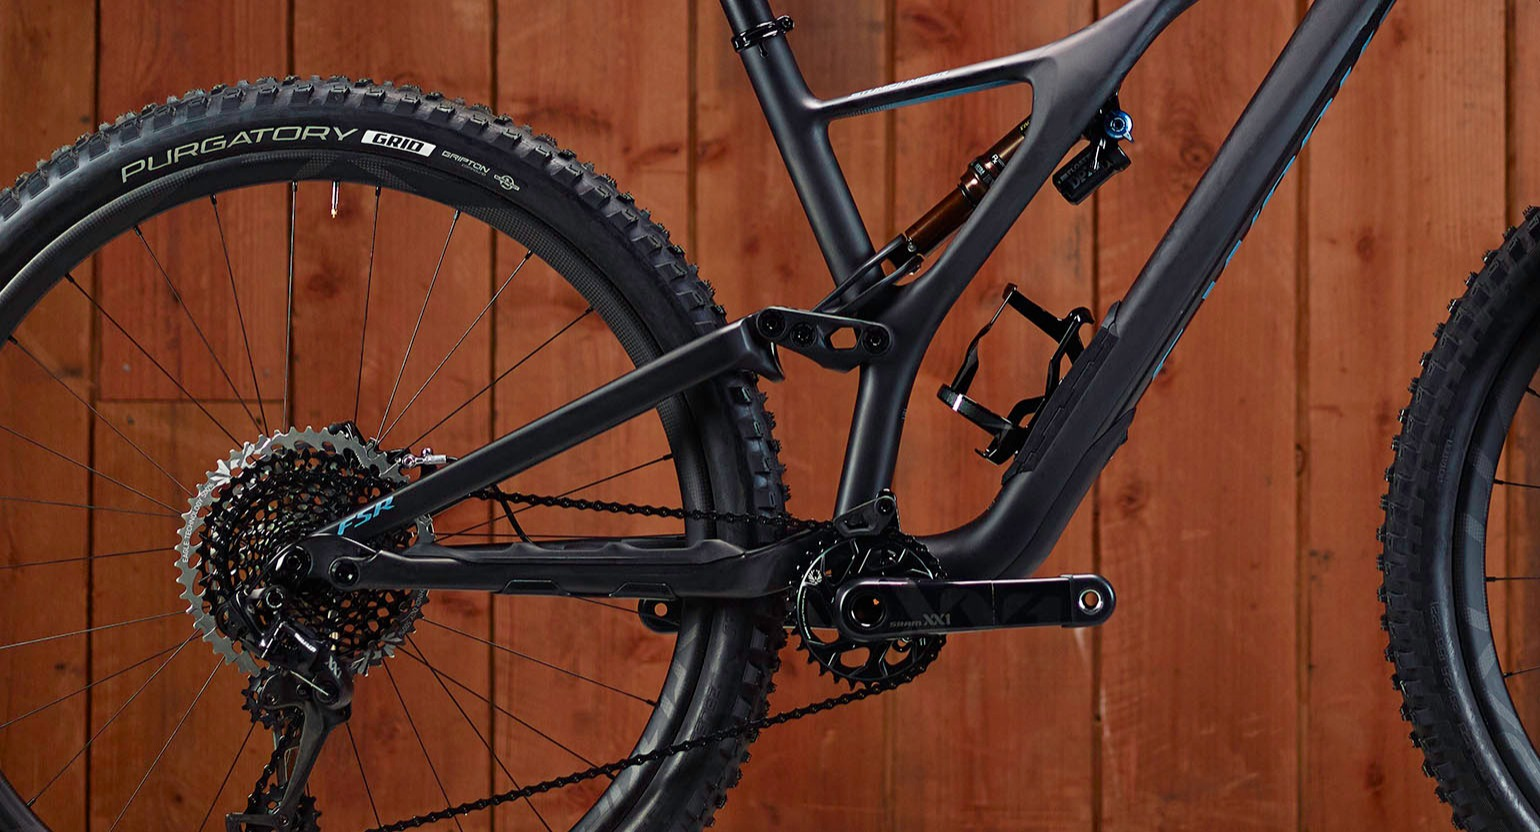 Detailed view of Specialized Stumpjumper